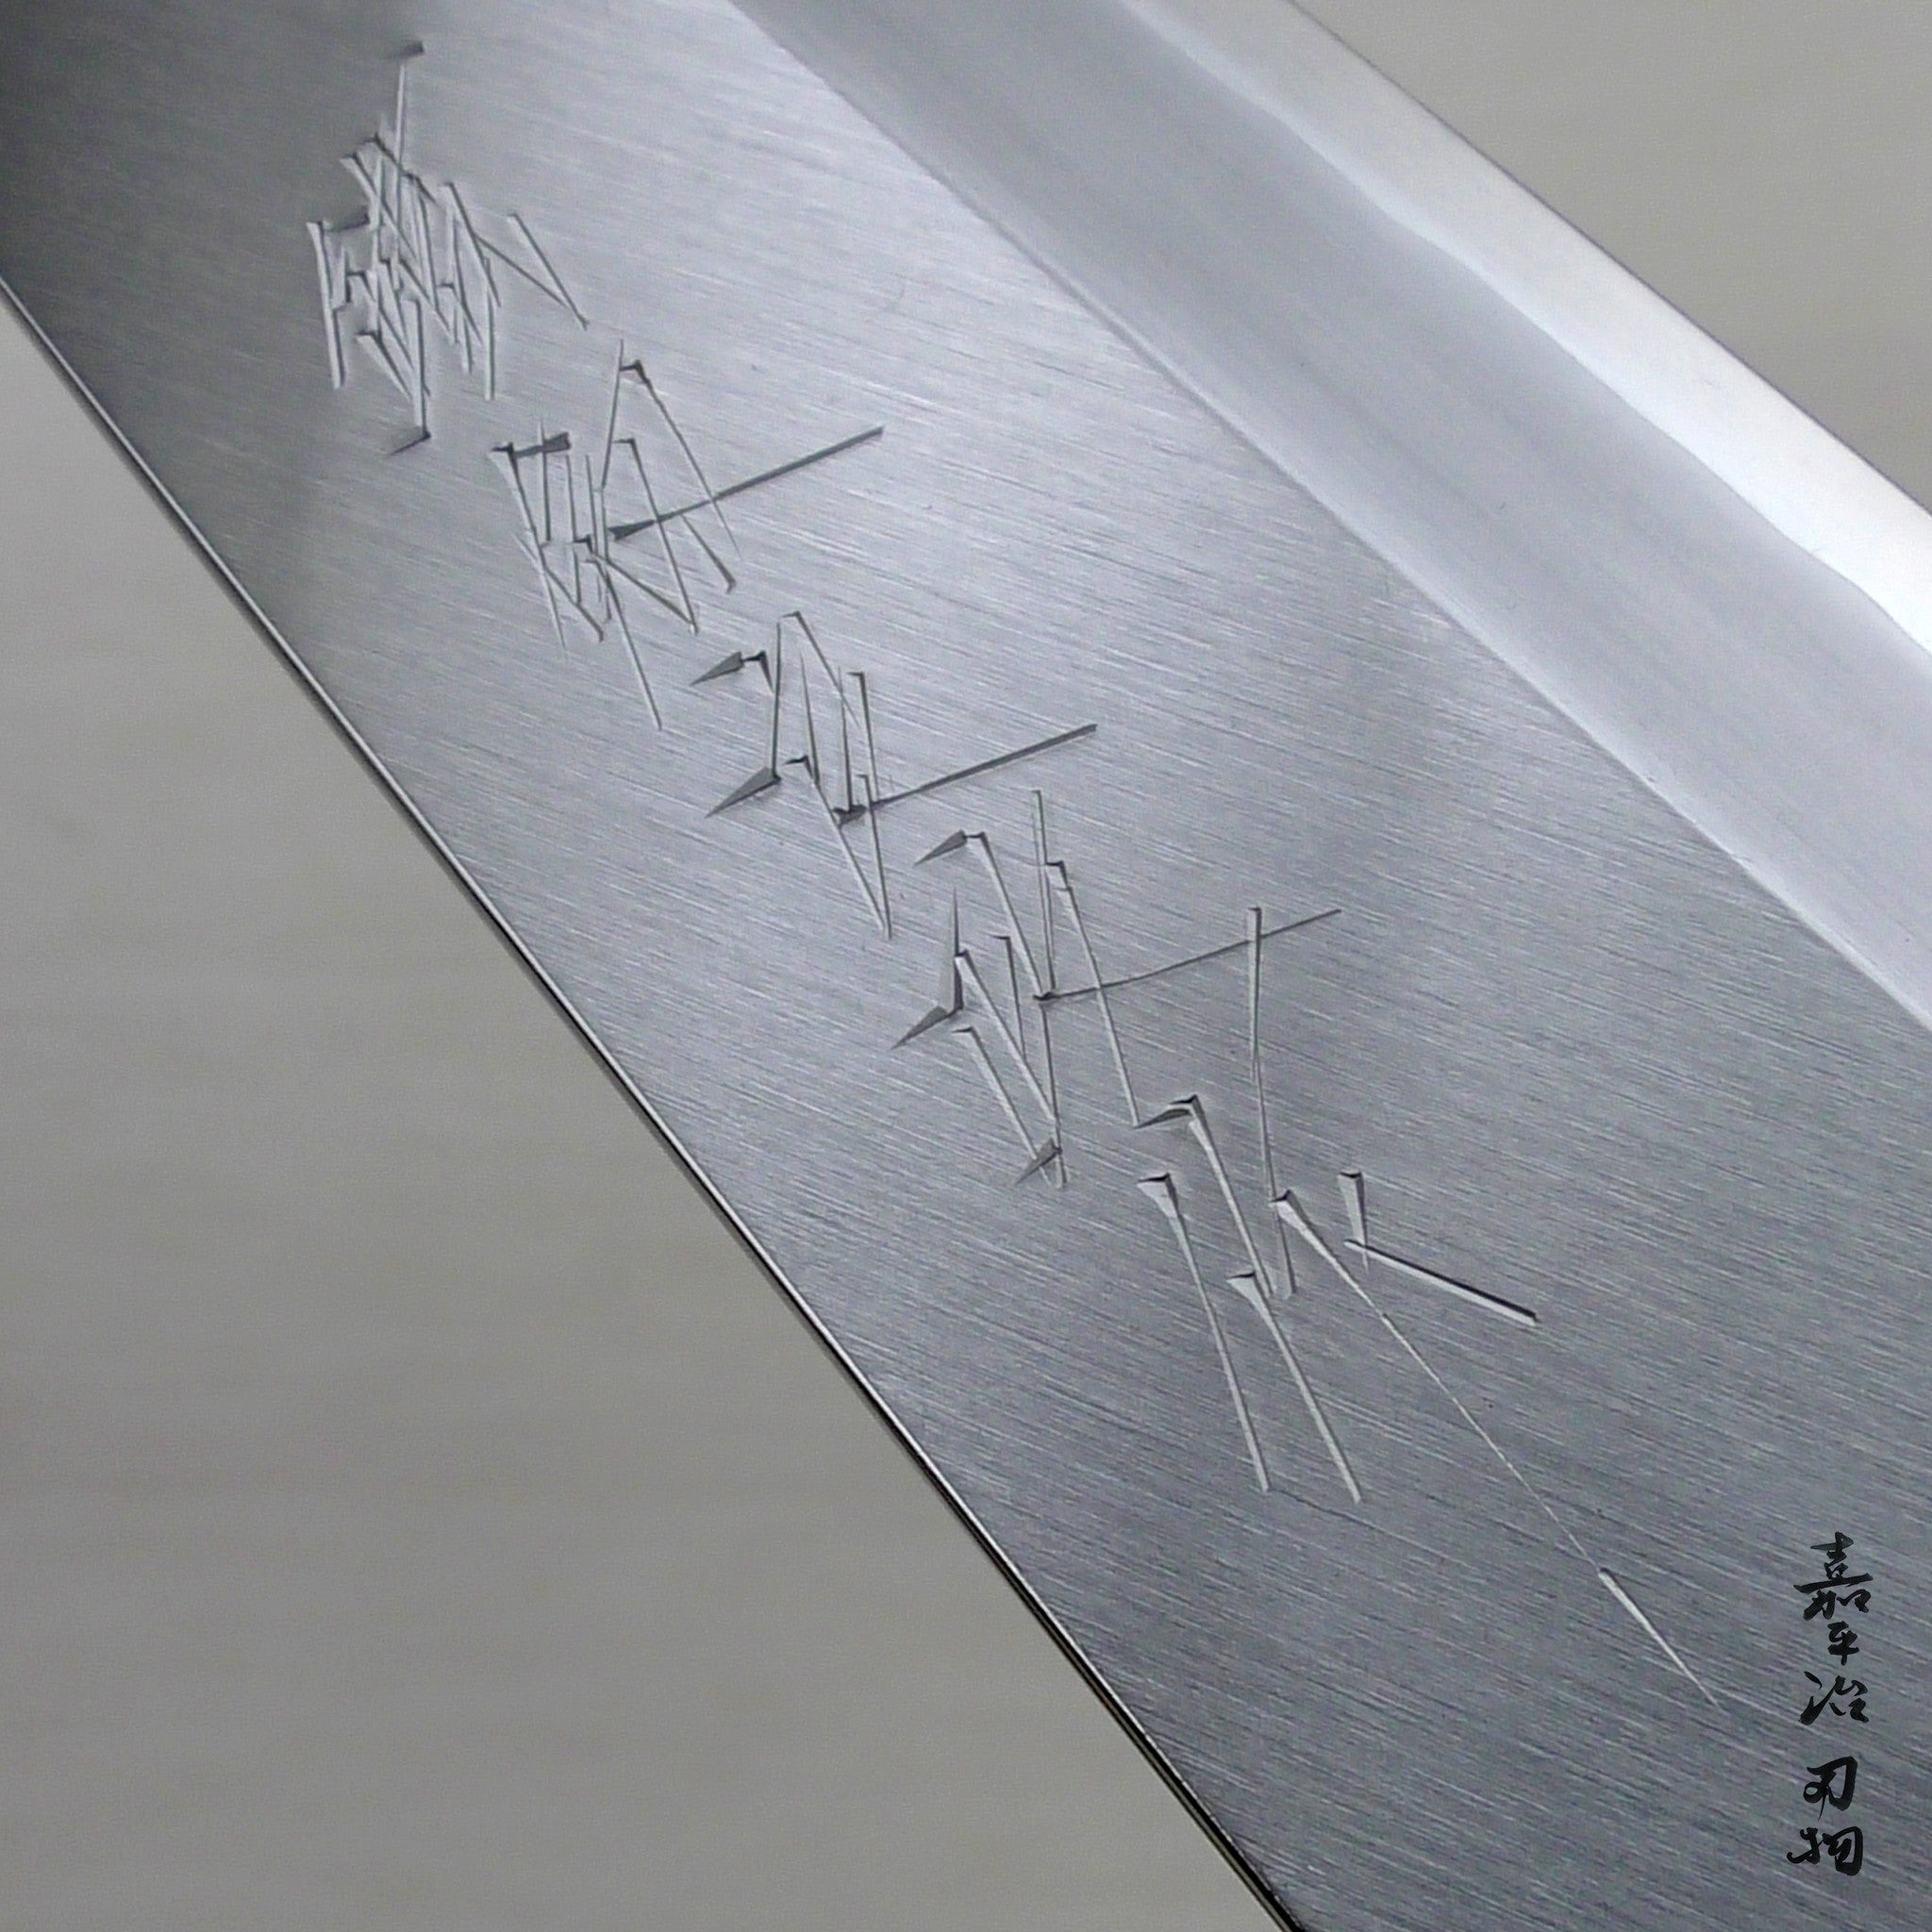 Tekken Yoshimasa VG10 HIT Damascus Hammered Sujihiki Japanese Knife